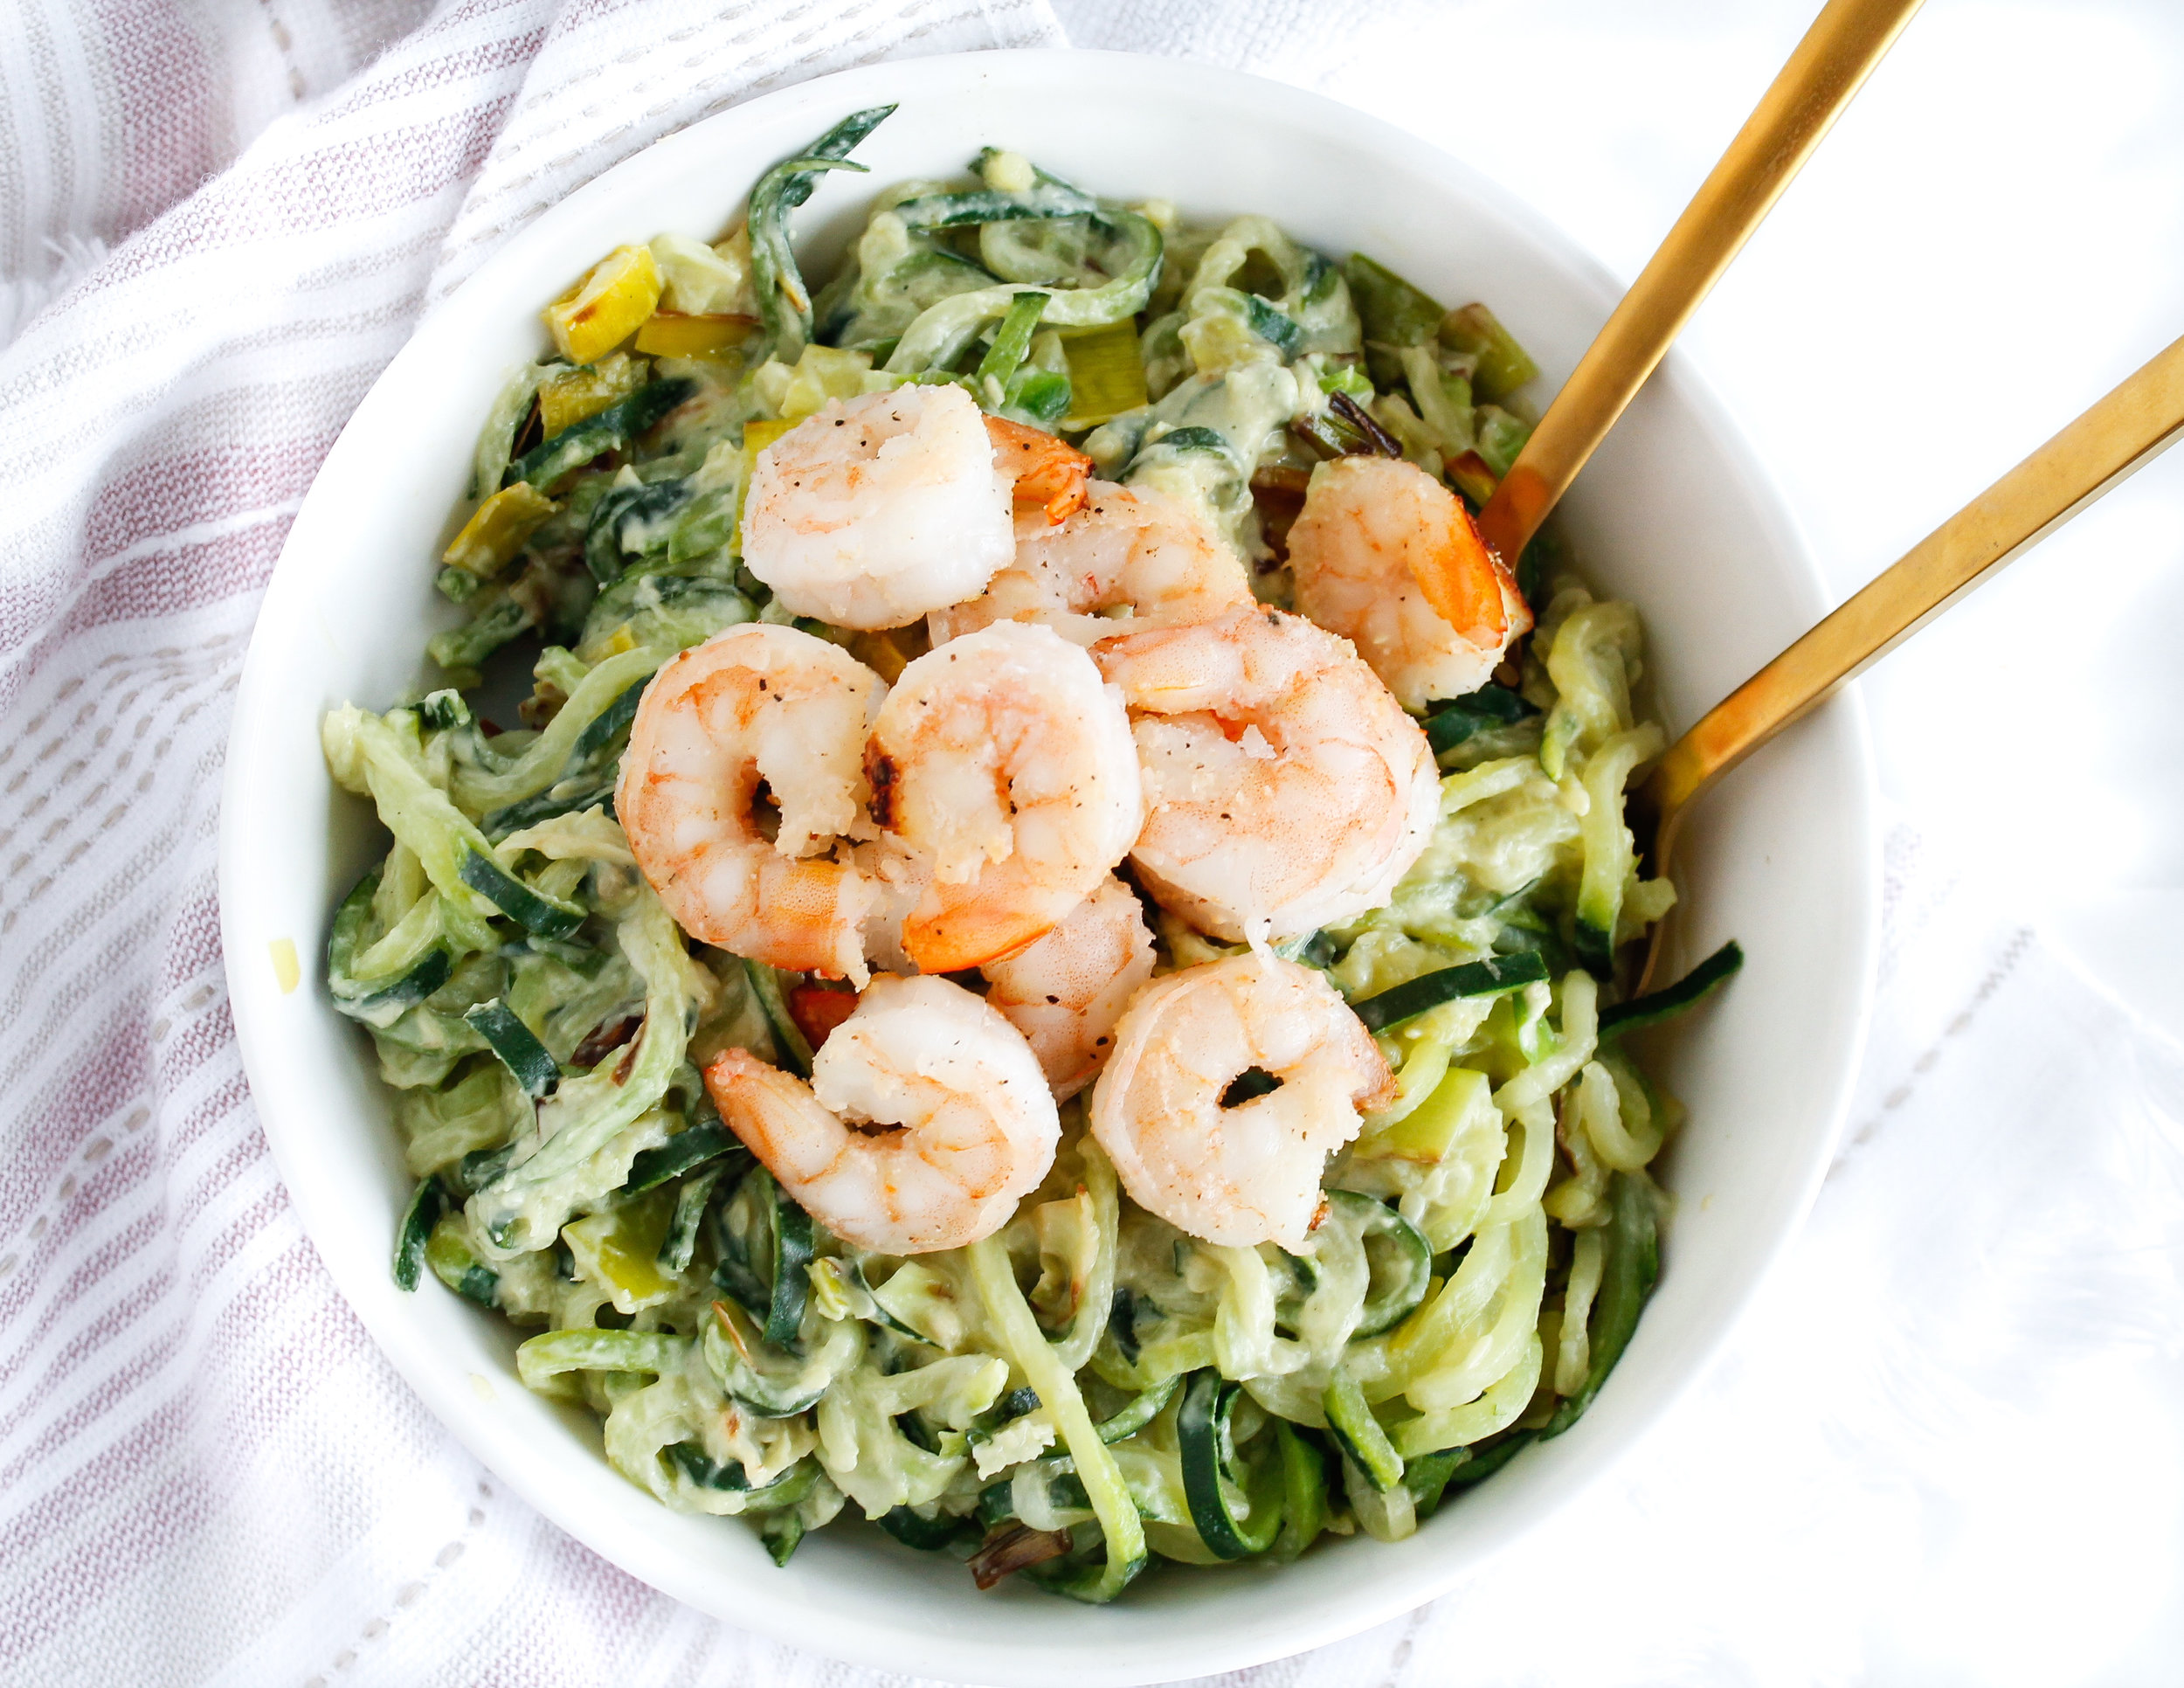 Creamy tahini avocado zoodles with shrimp makes for the perfect paleo approved lunch or dinner! Full of protein, healthy fats and TONS of flavor. It's grain free, gluten free, dairy free and Specific Carbohydrate Diet friendly! #paleodinner #paleorecipes #specificcarbohydratediet